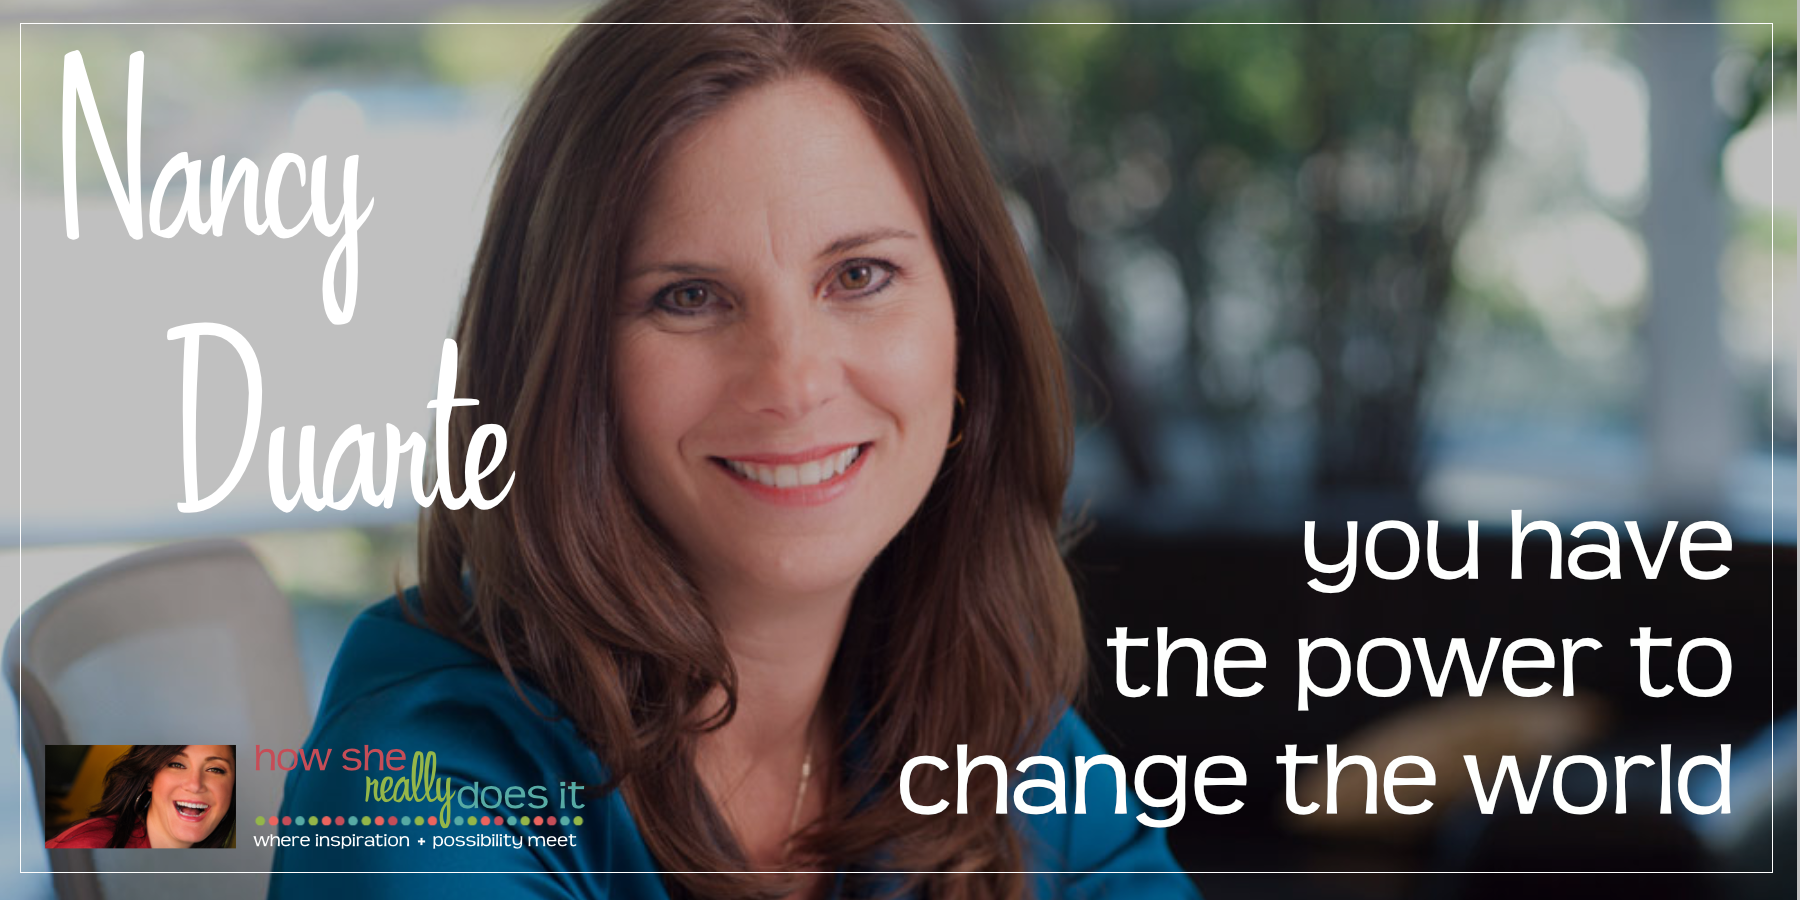 Nancy Duarte: You have the power to change the world